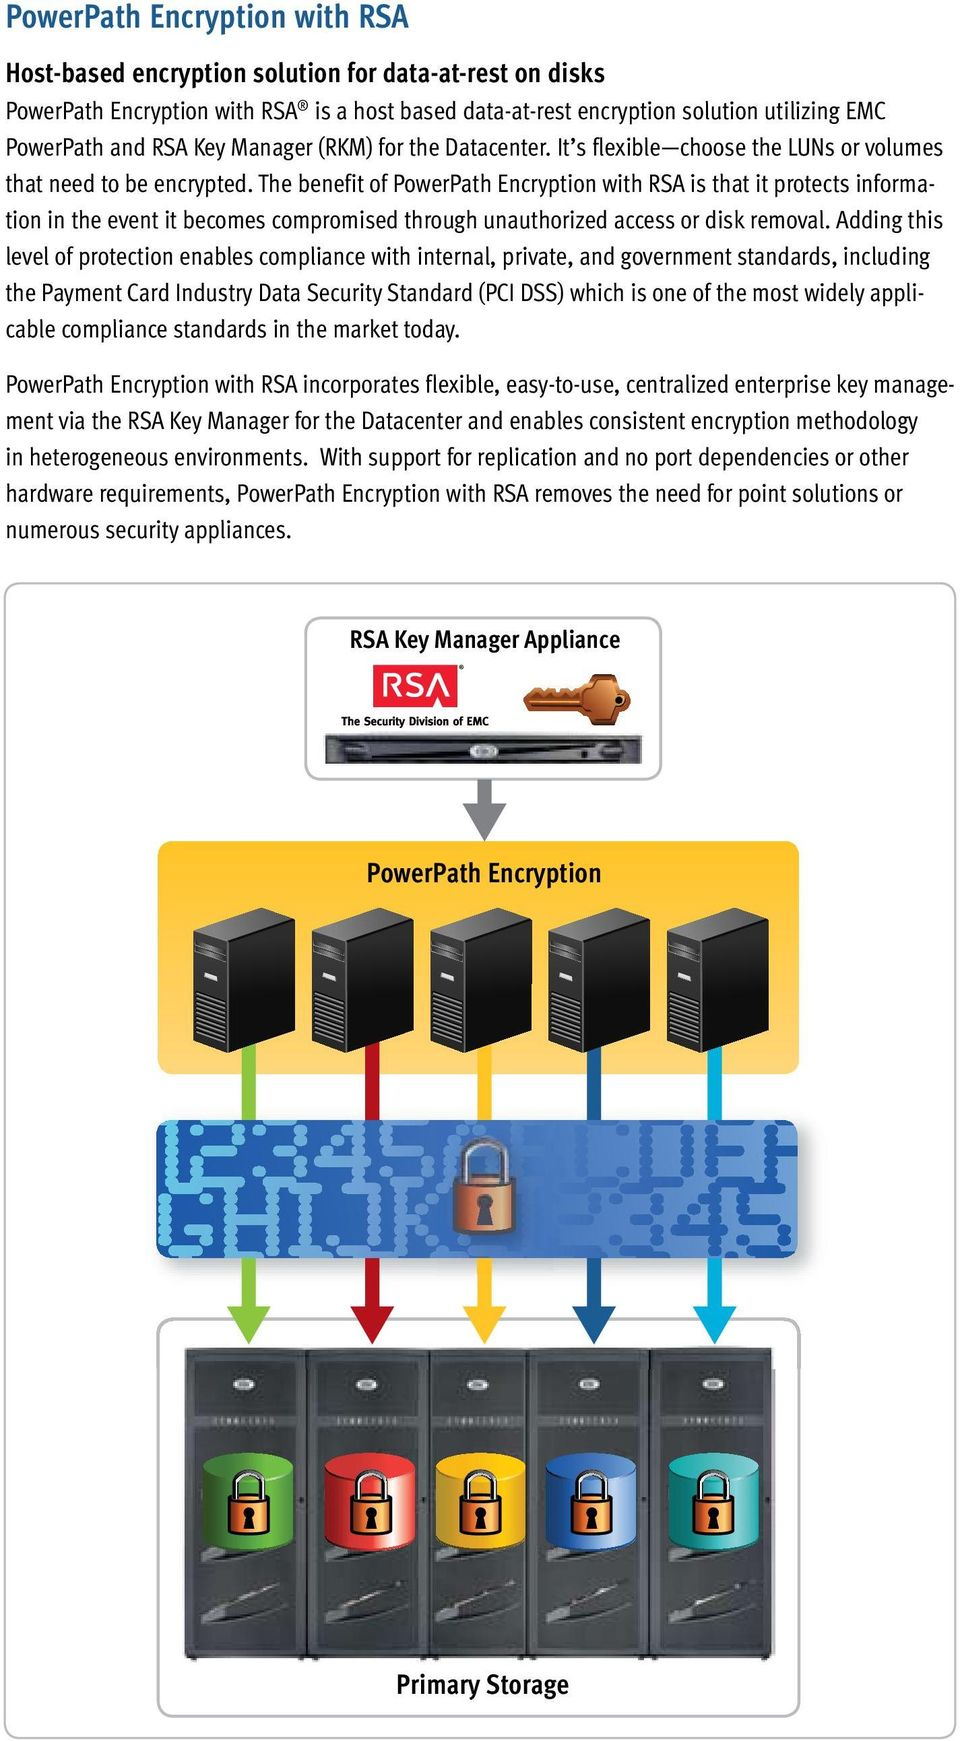 The benefit of PowerPath Encryption with RSA is that it protects information in the event it becomes compromised through unauthorized access or disk removal.